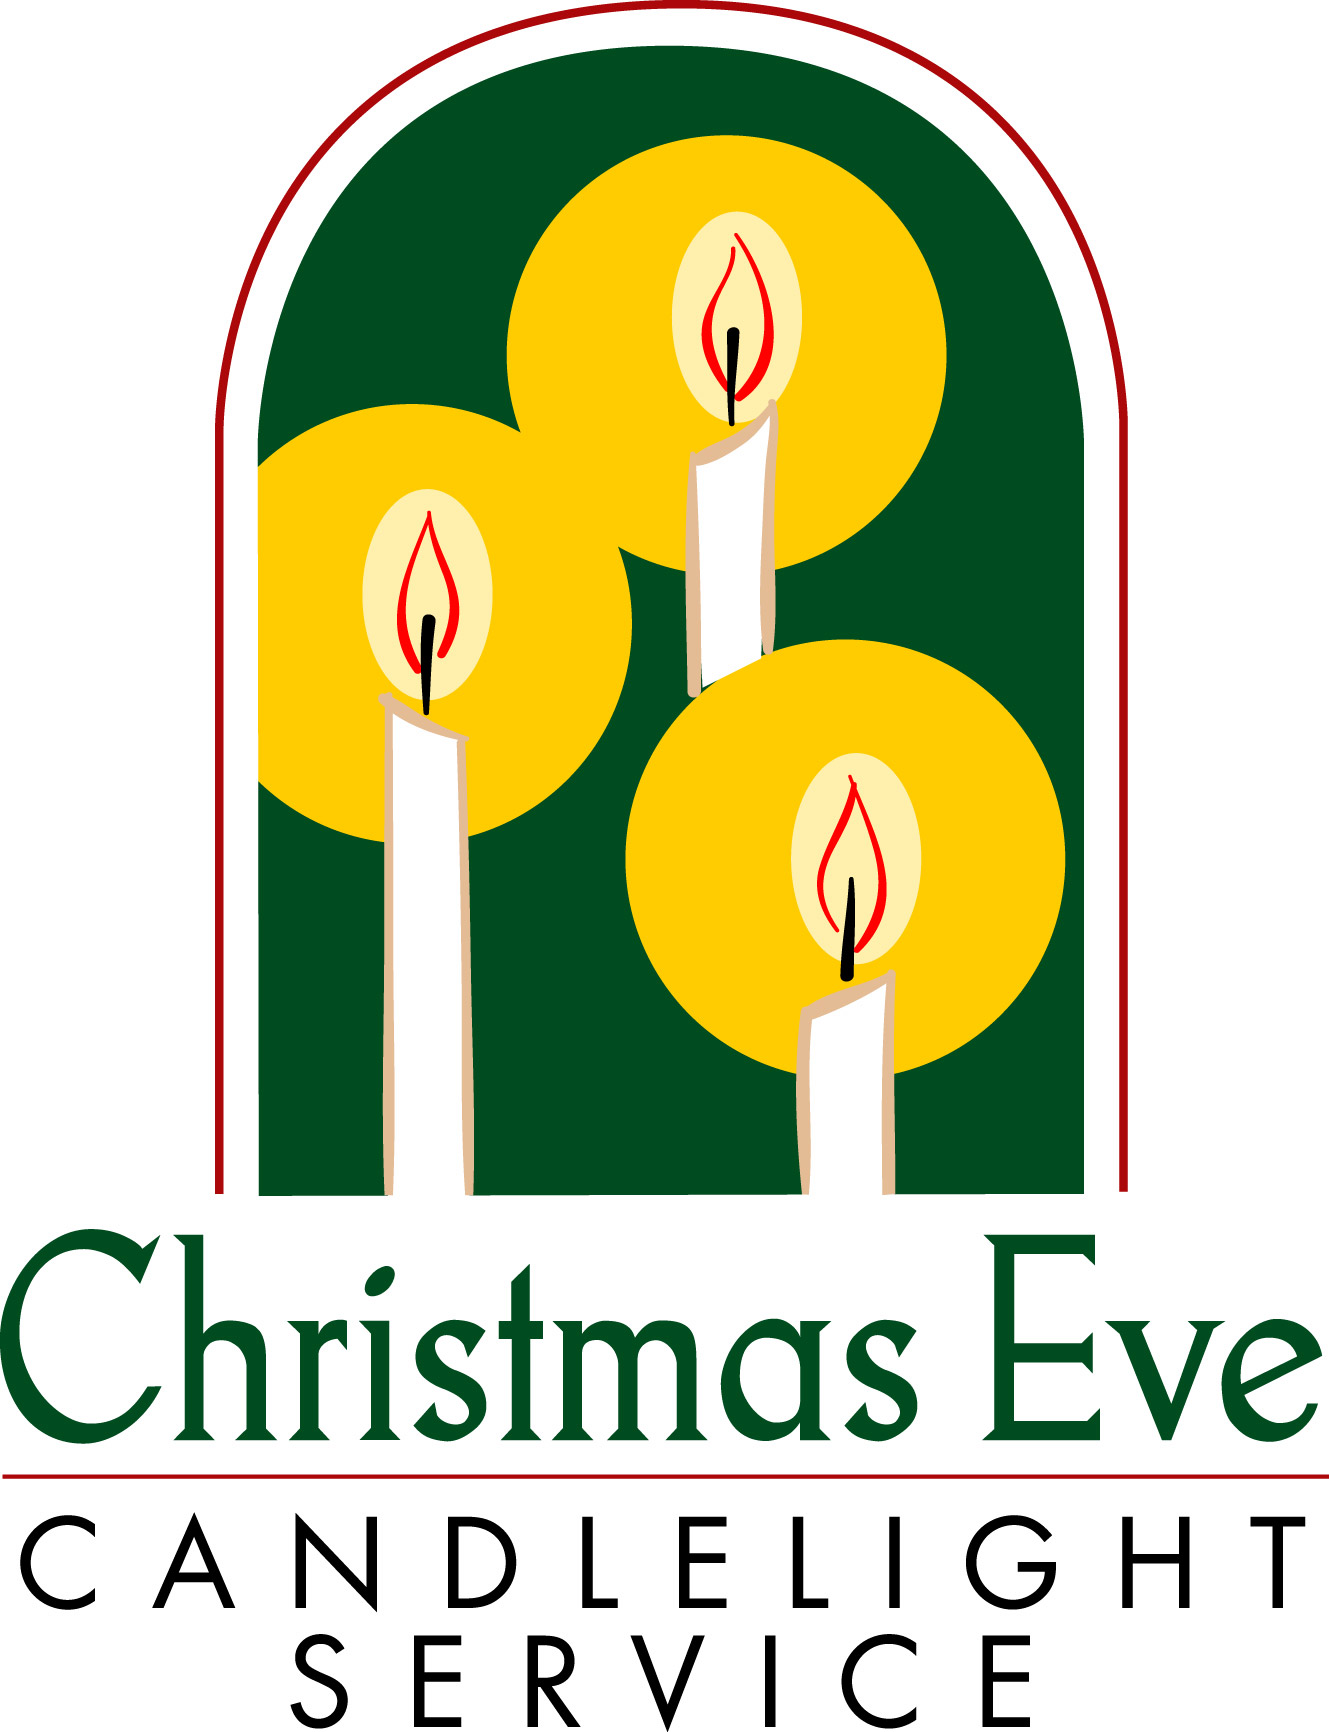 1329x1732 Candlelight Service Clipart